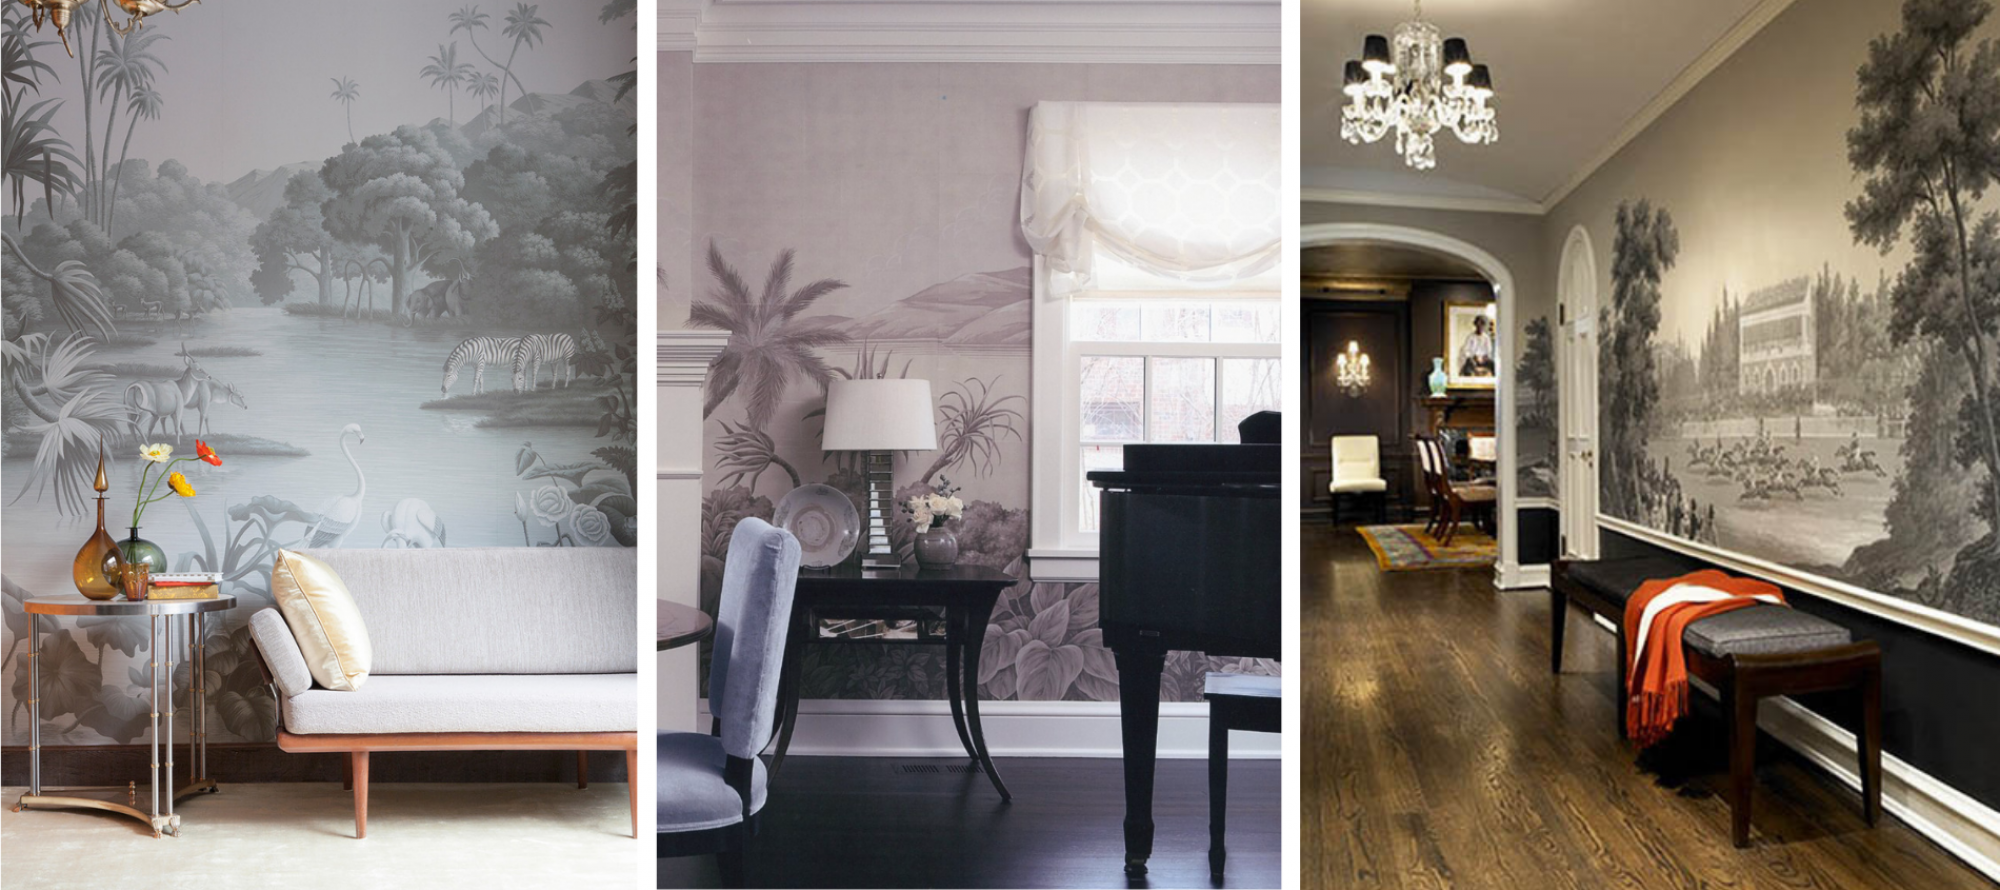 With such stunning options from de Gournay, Gracie and Zuber, it was tough to commit to a scenic wallpaper. Stay tuned to see what we picked. (Images: l-r, de Gournay, Gracie and Zuber).